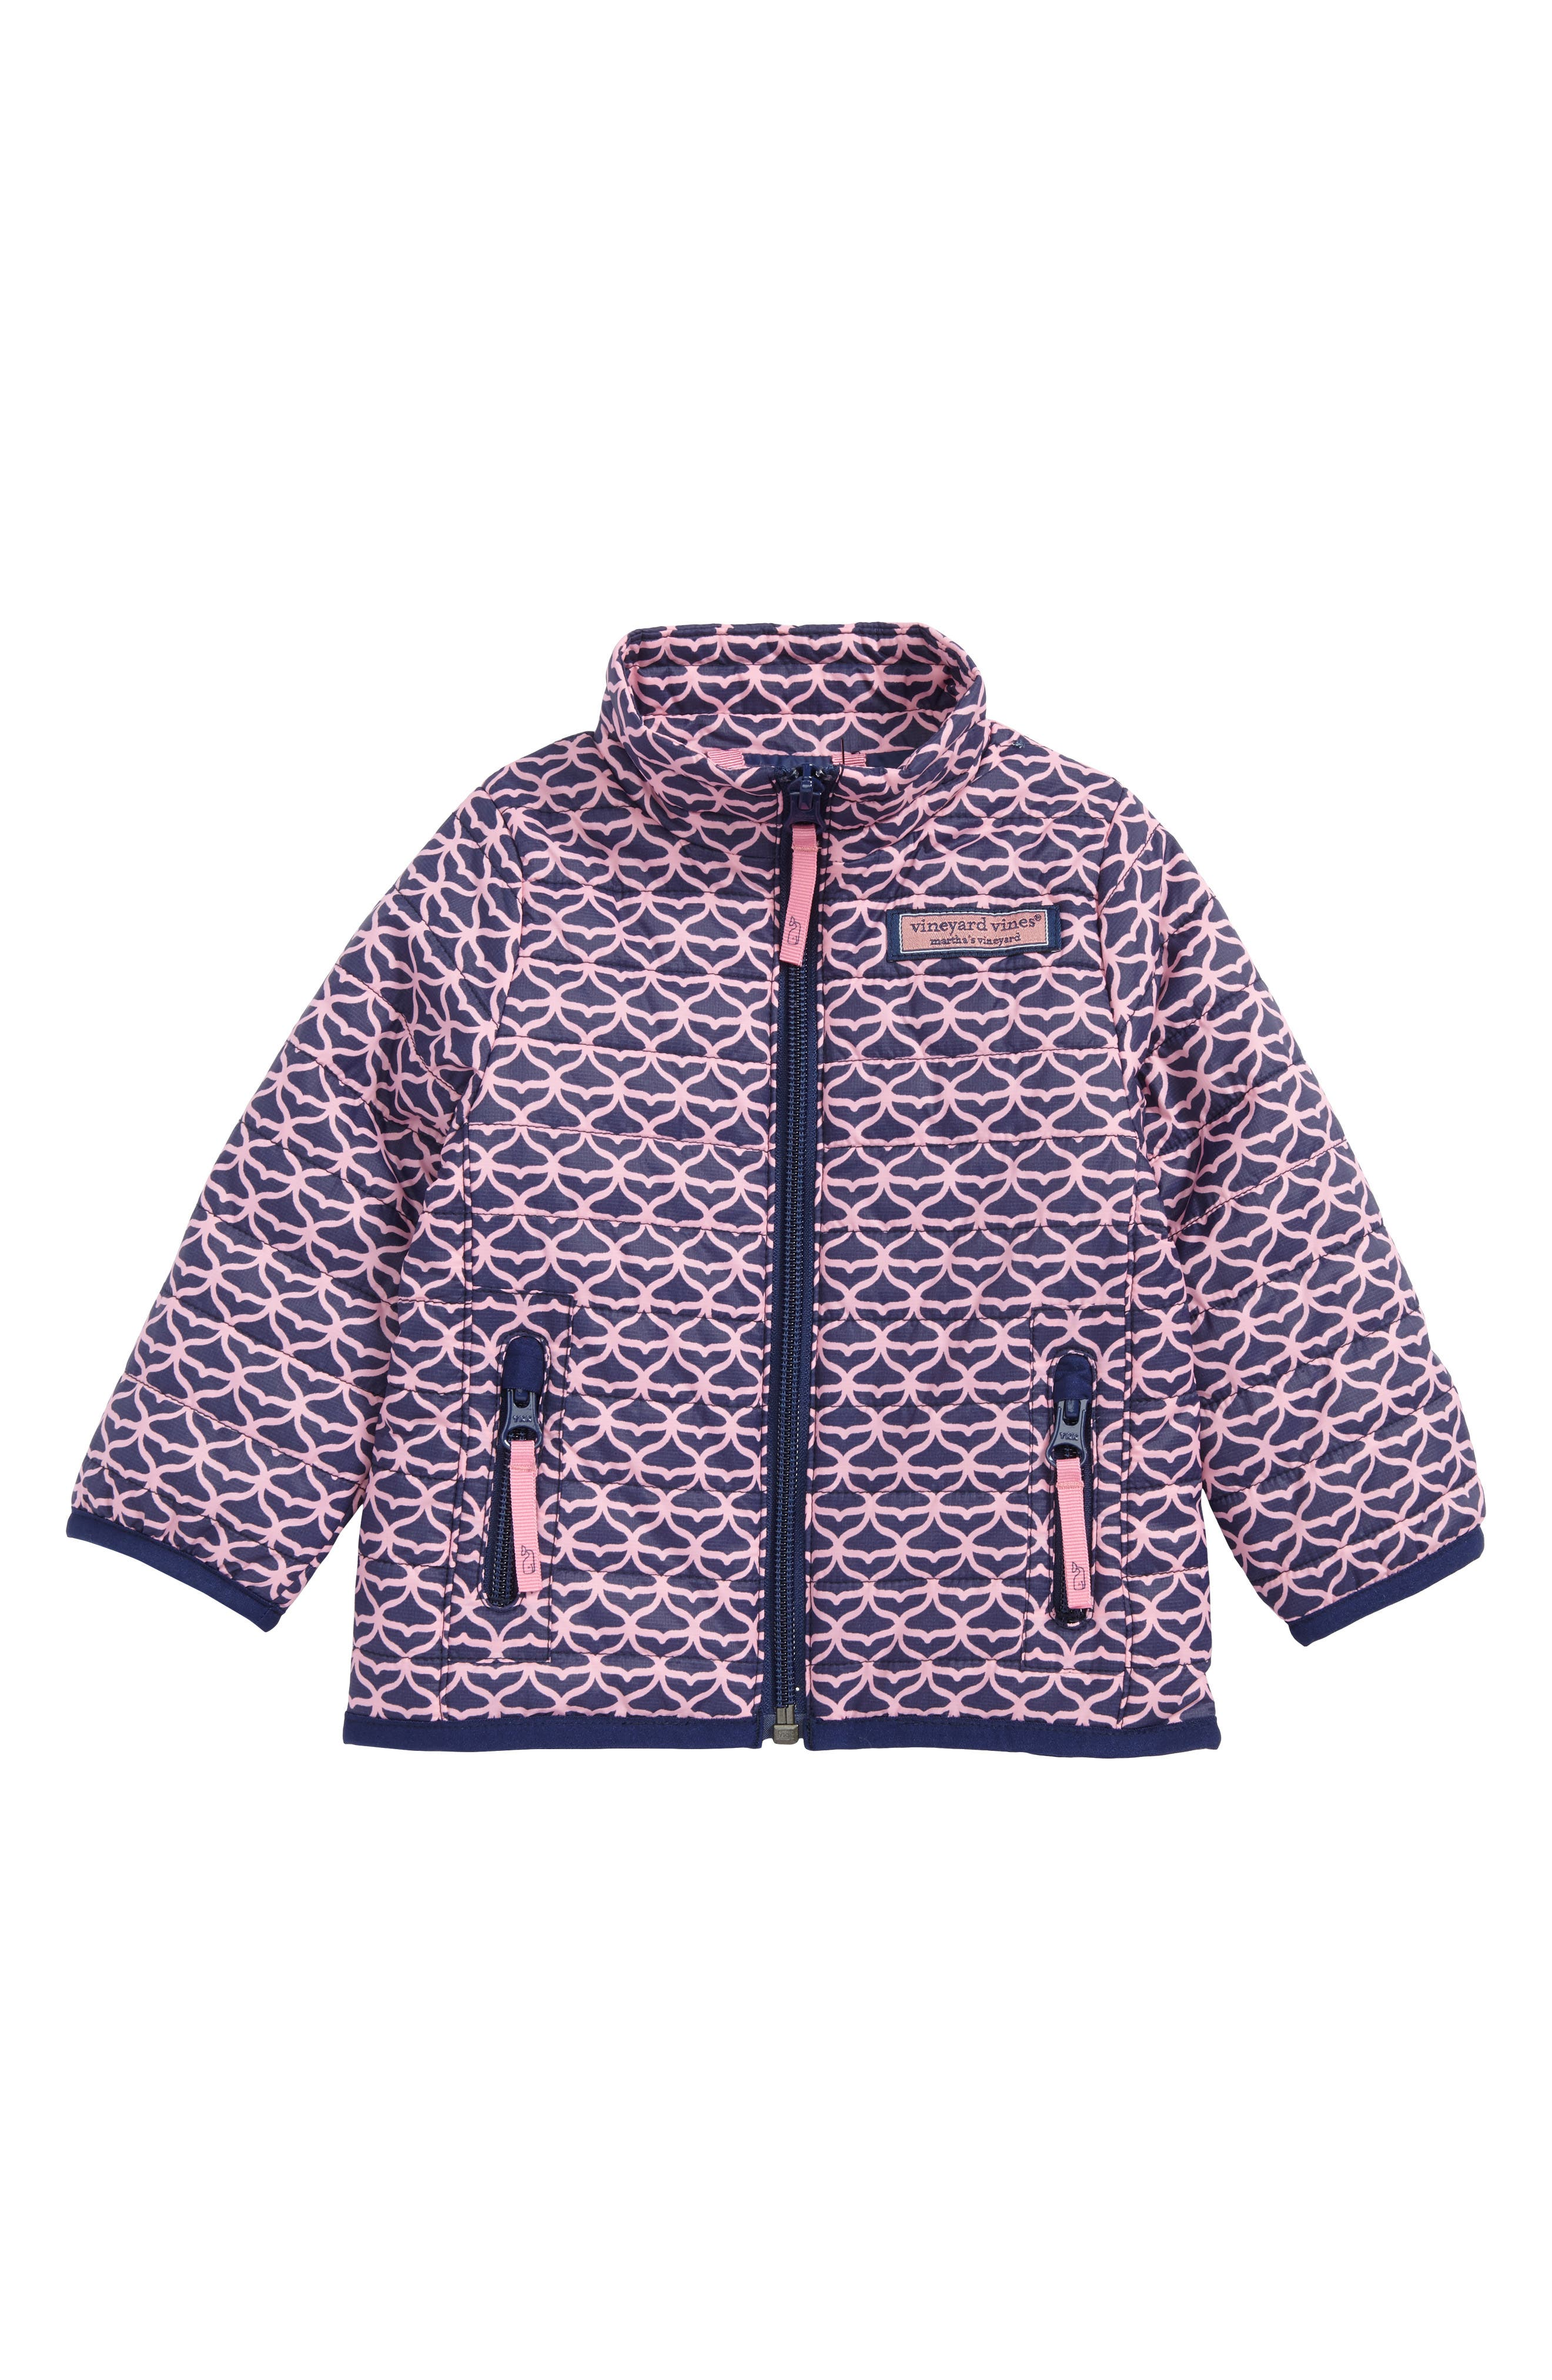 Whale Tail Mountain Weekend Quilted Jacket,                             Main thumbnail 1, color,